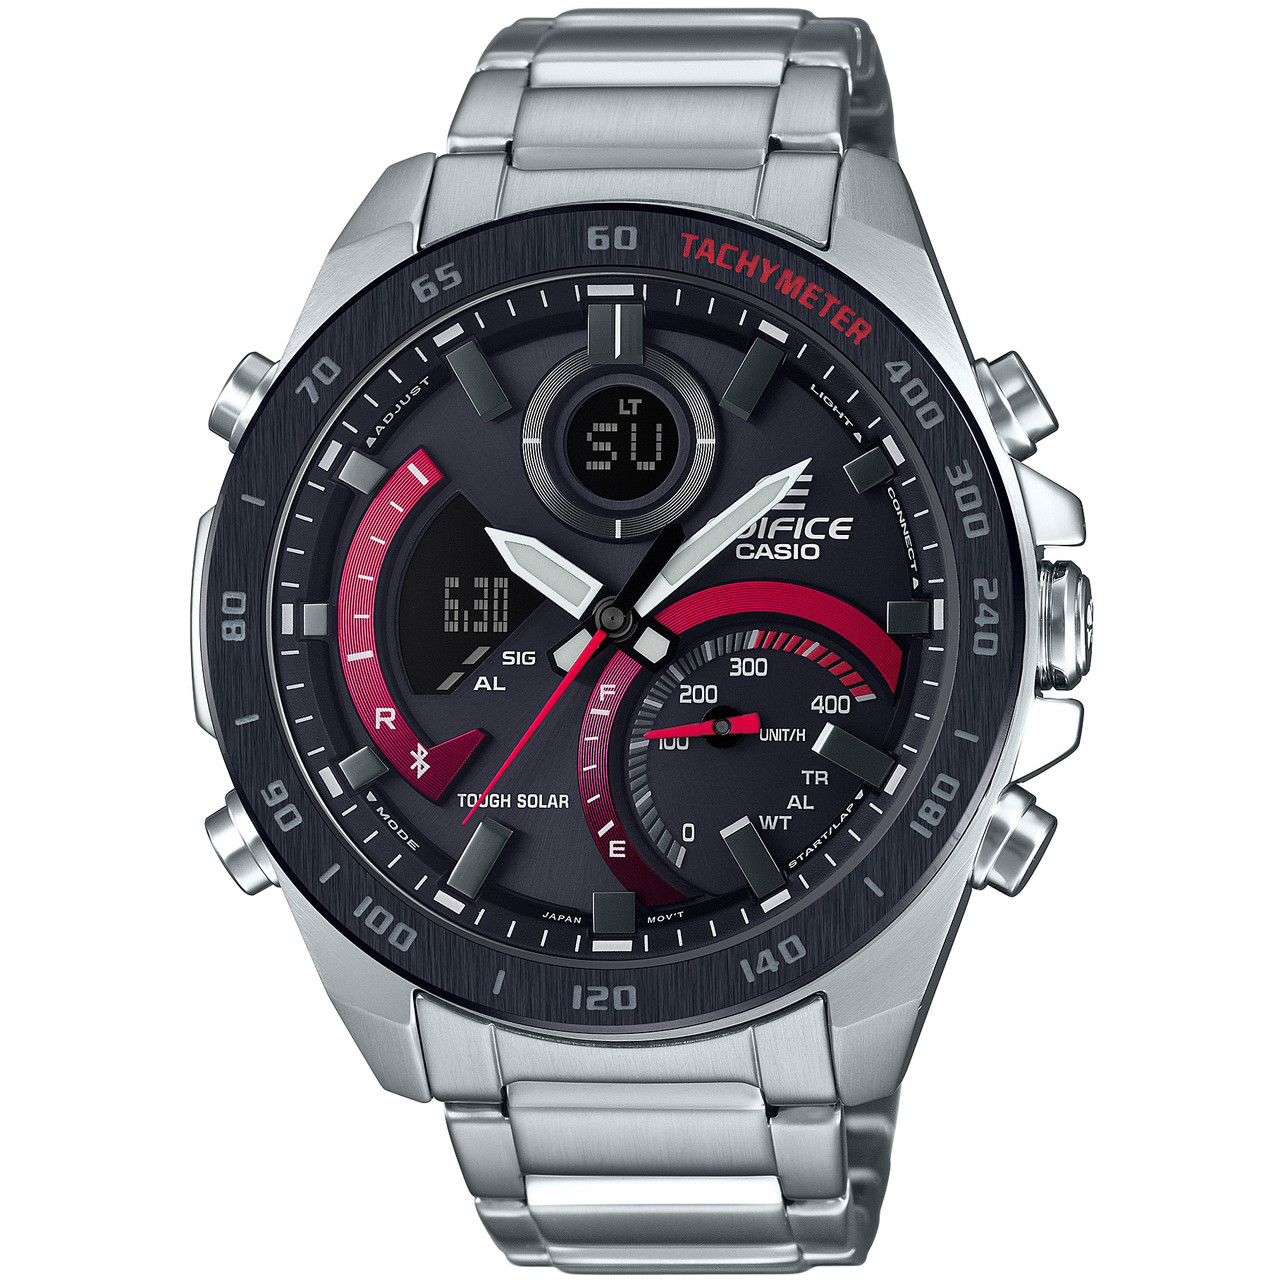 f67e8c8b9 Casio Edifice Bluetooth Tough Solar World Time Silver Bracelet Watch  ECB-900DB-1AER